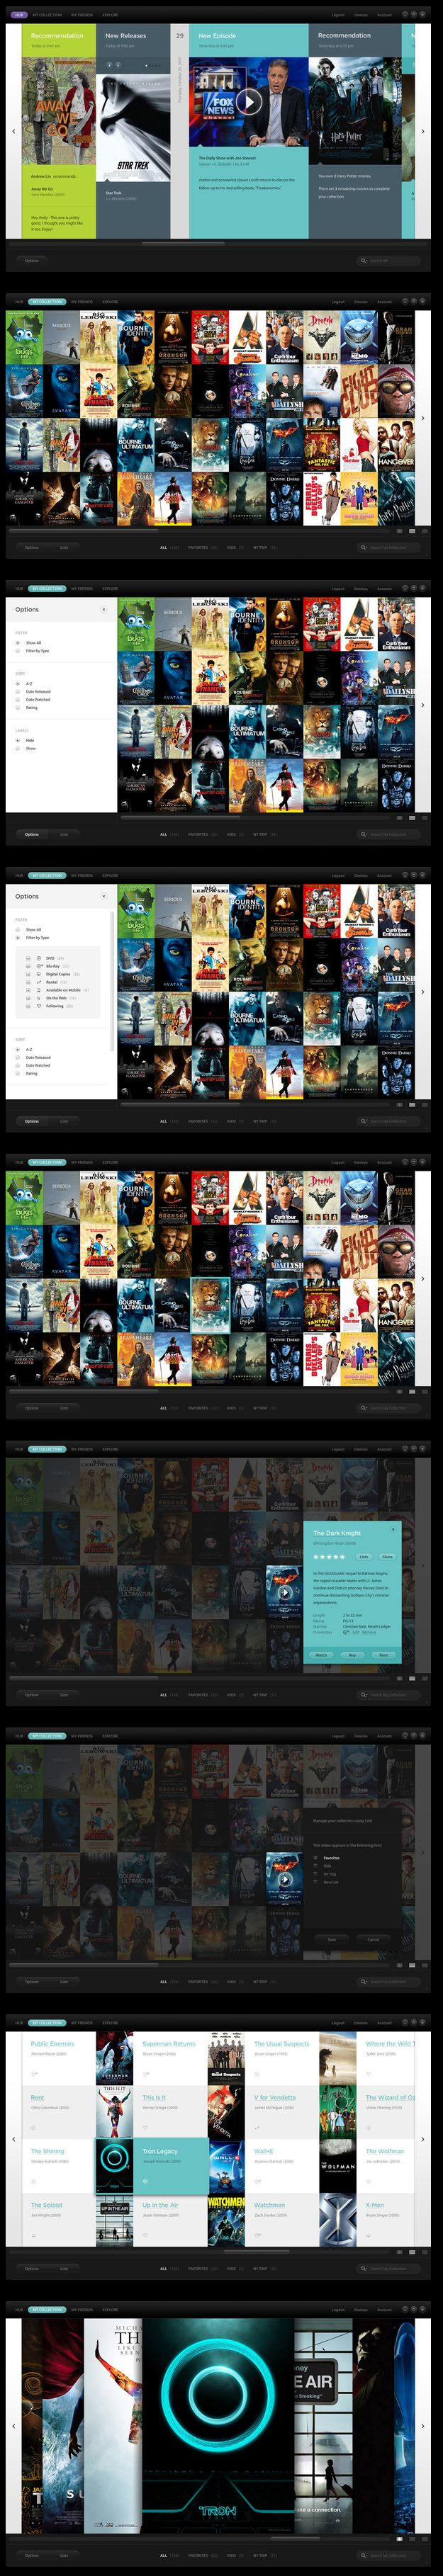 Warner Bros - Im into grids, like really into grids, add some images and im a sucker more on http://html5themes.org